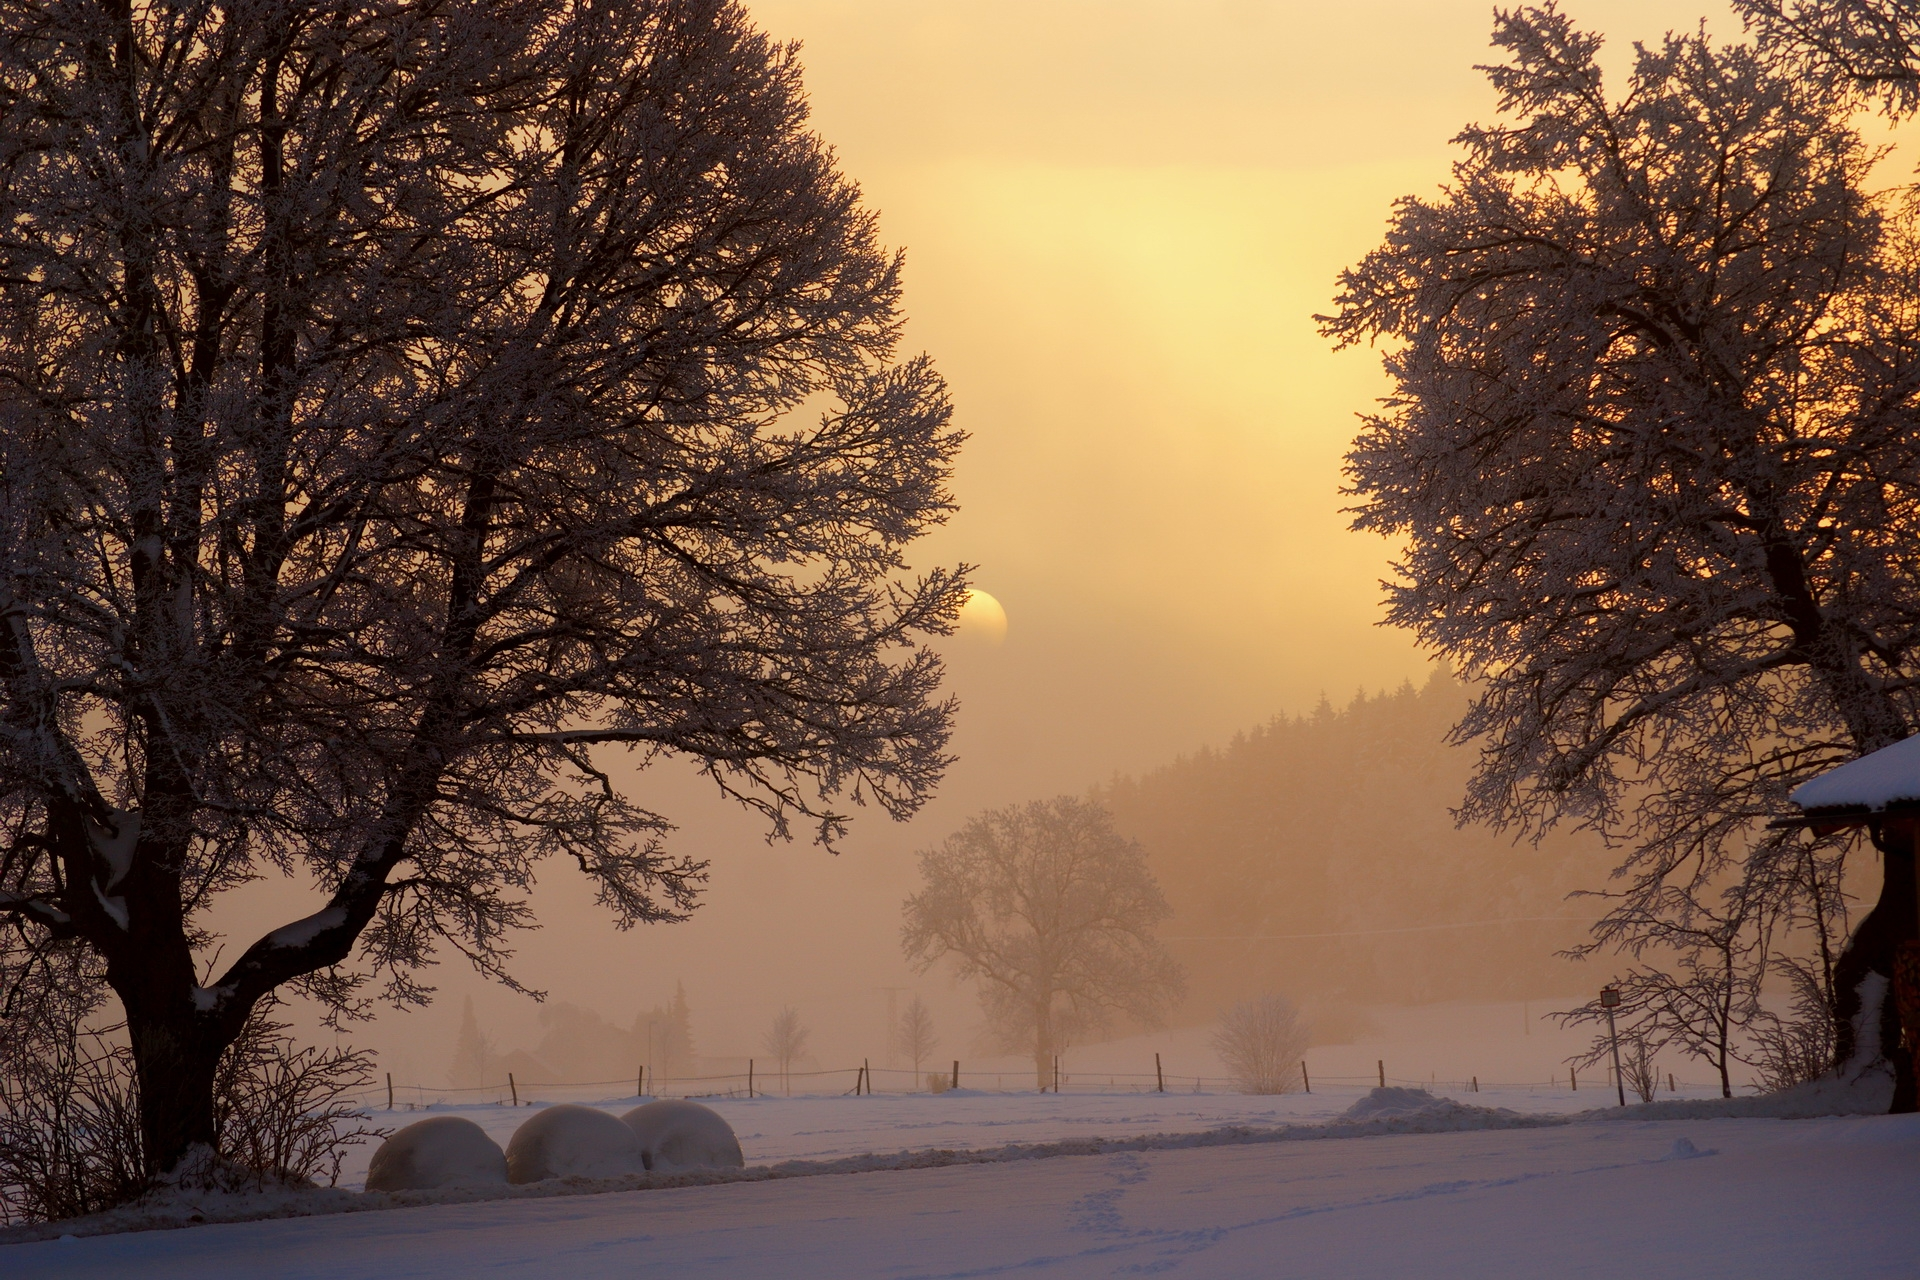 145376 download wallpaper Nature, Dawn, Winter, Sky, Lumen, Opening, Morning, Trees, Snow, Fog, Frost, Courtyard, Yard, Sun screensavers and pictures for free